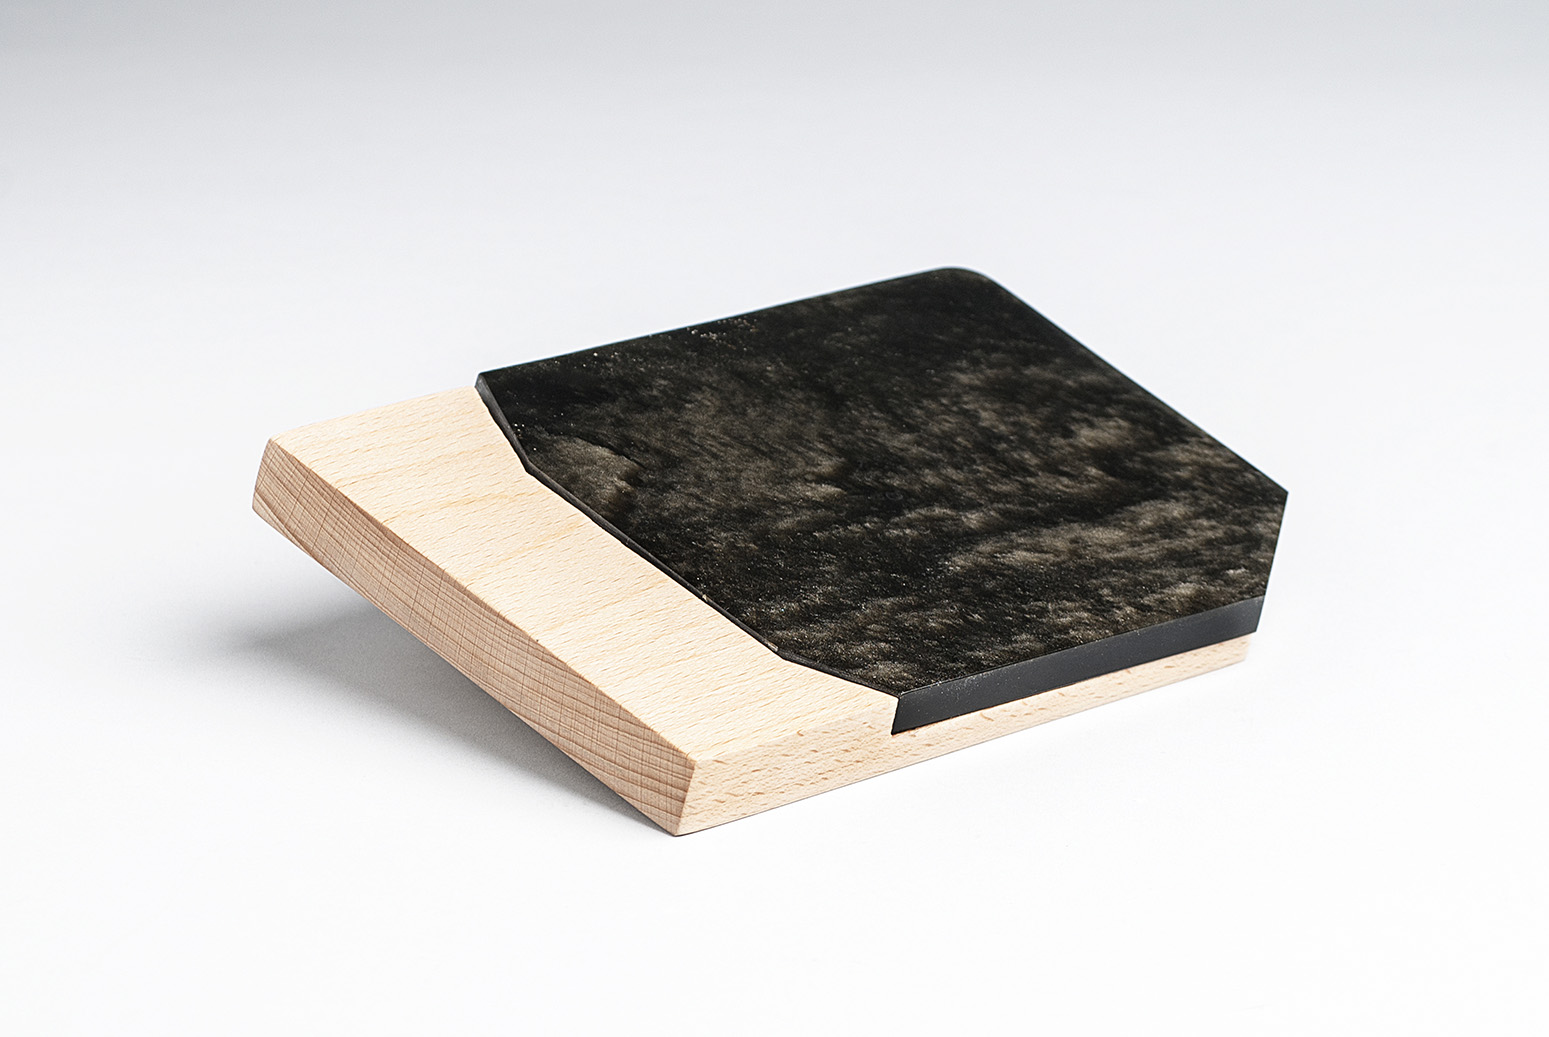 Obsidian Cutting Boards Marion Friedmann Gallery Collectible Out Of The Ordinary Design Art Craft